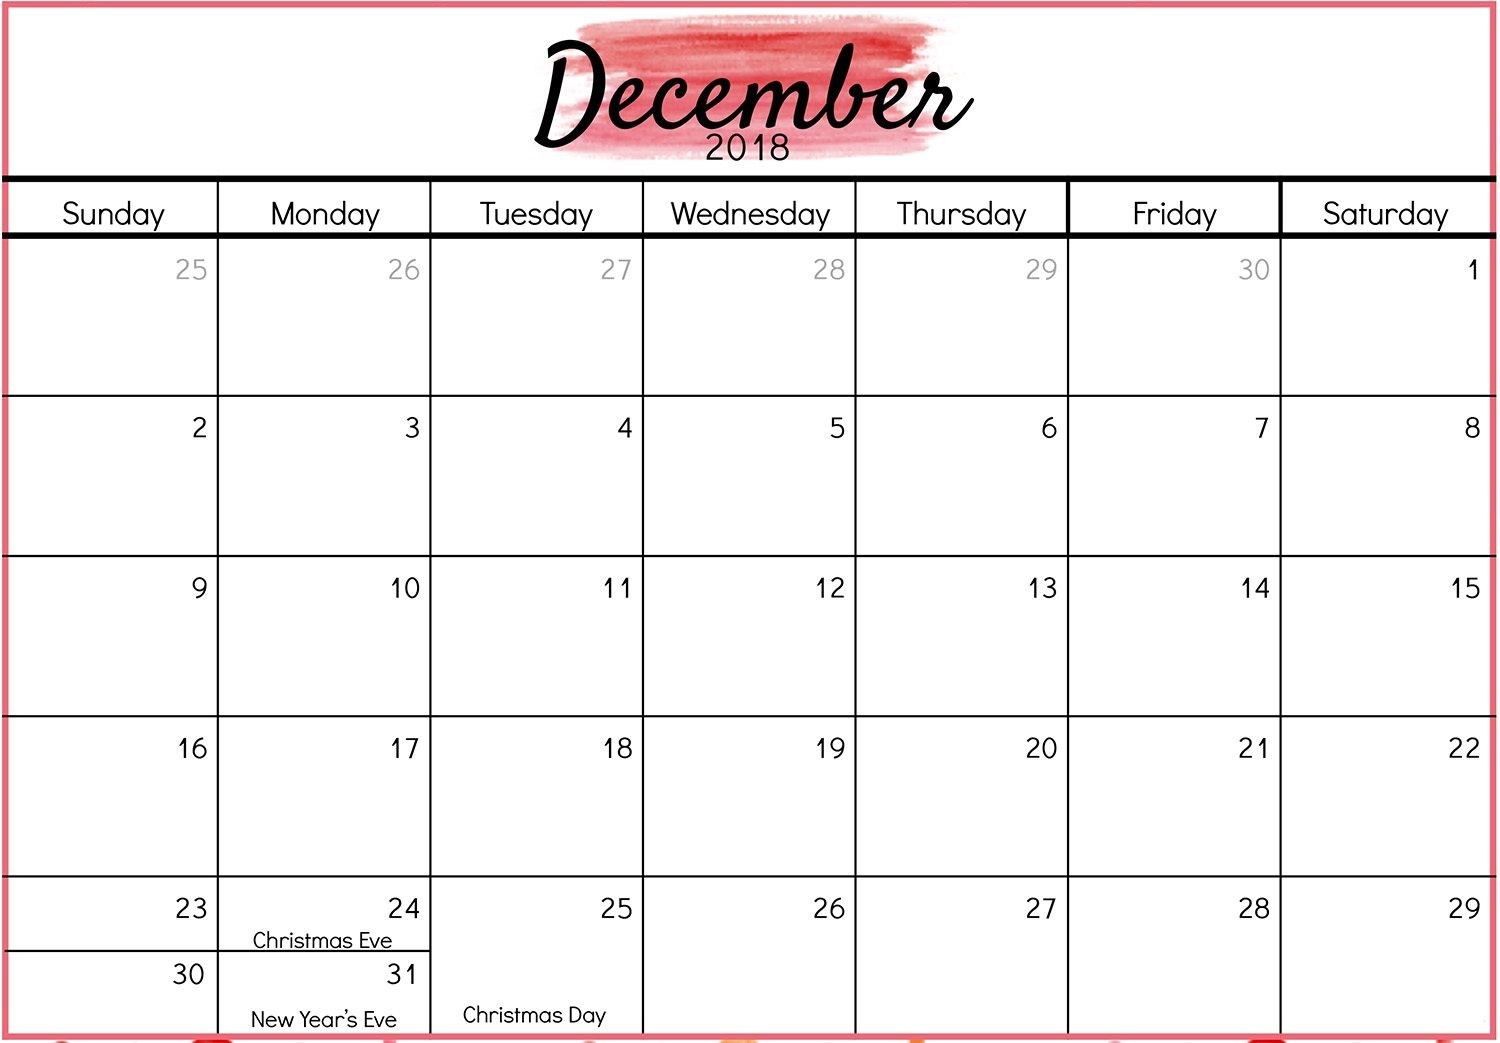 December 2018 Calendar Public and National Holidays.